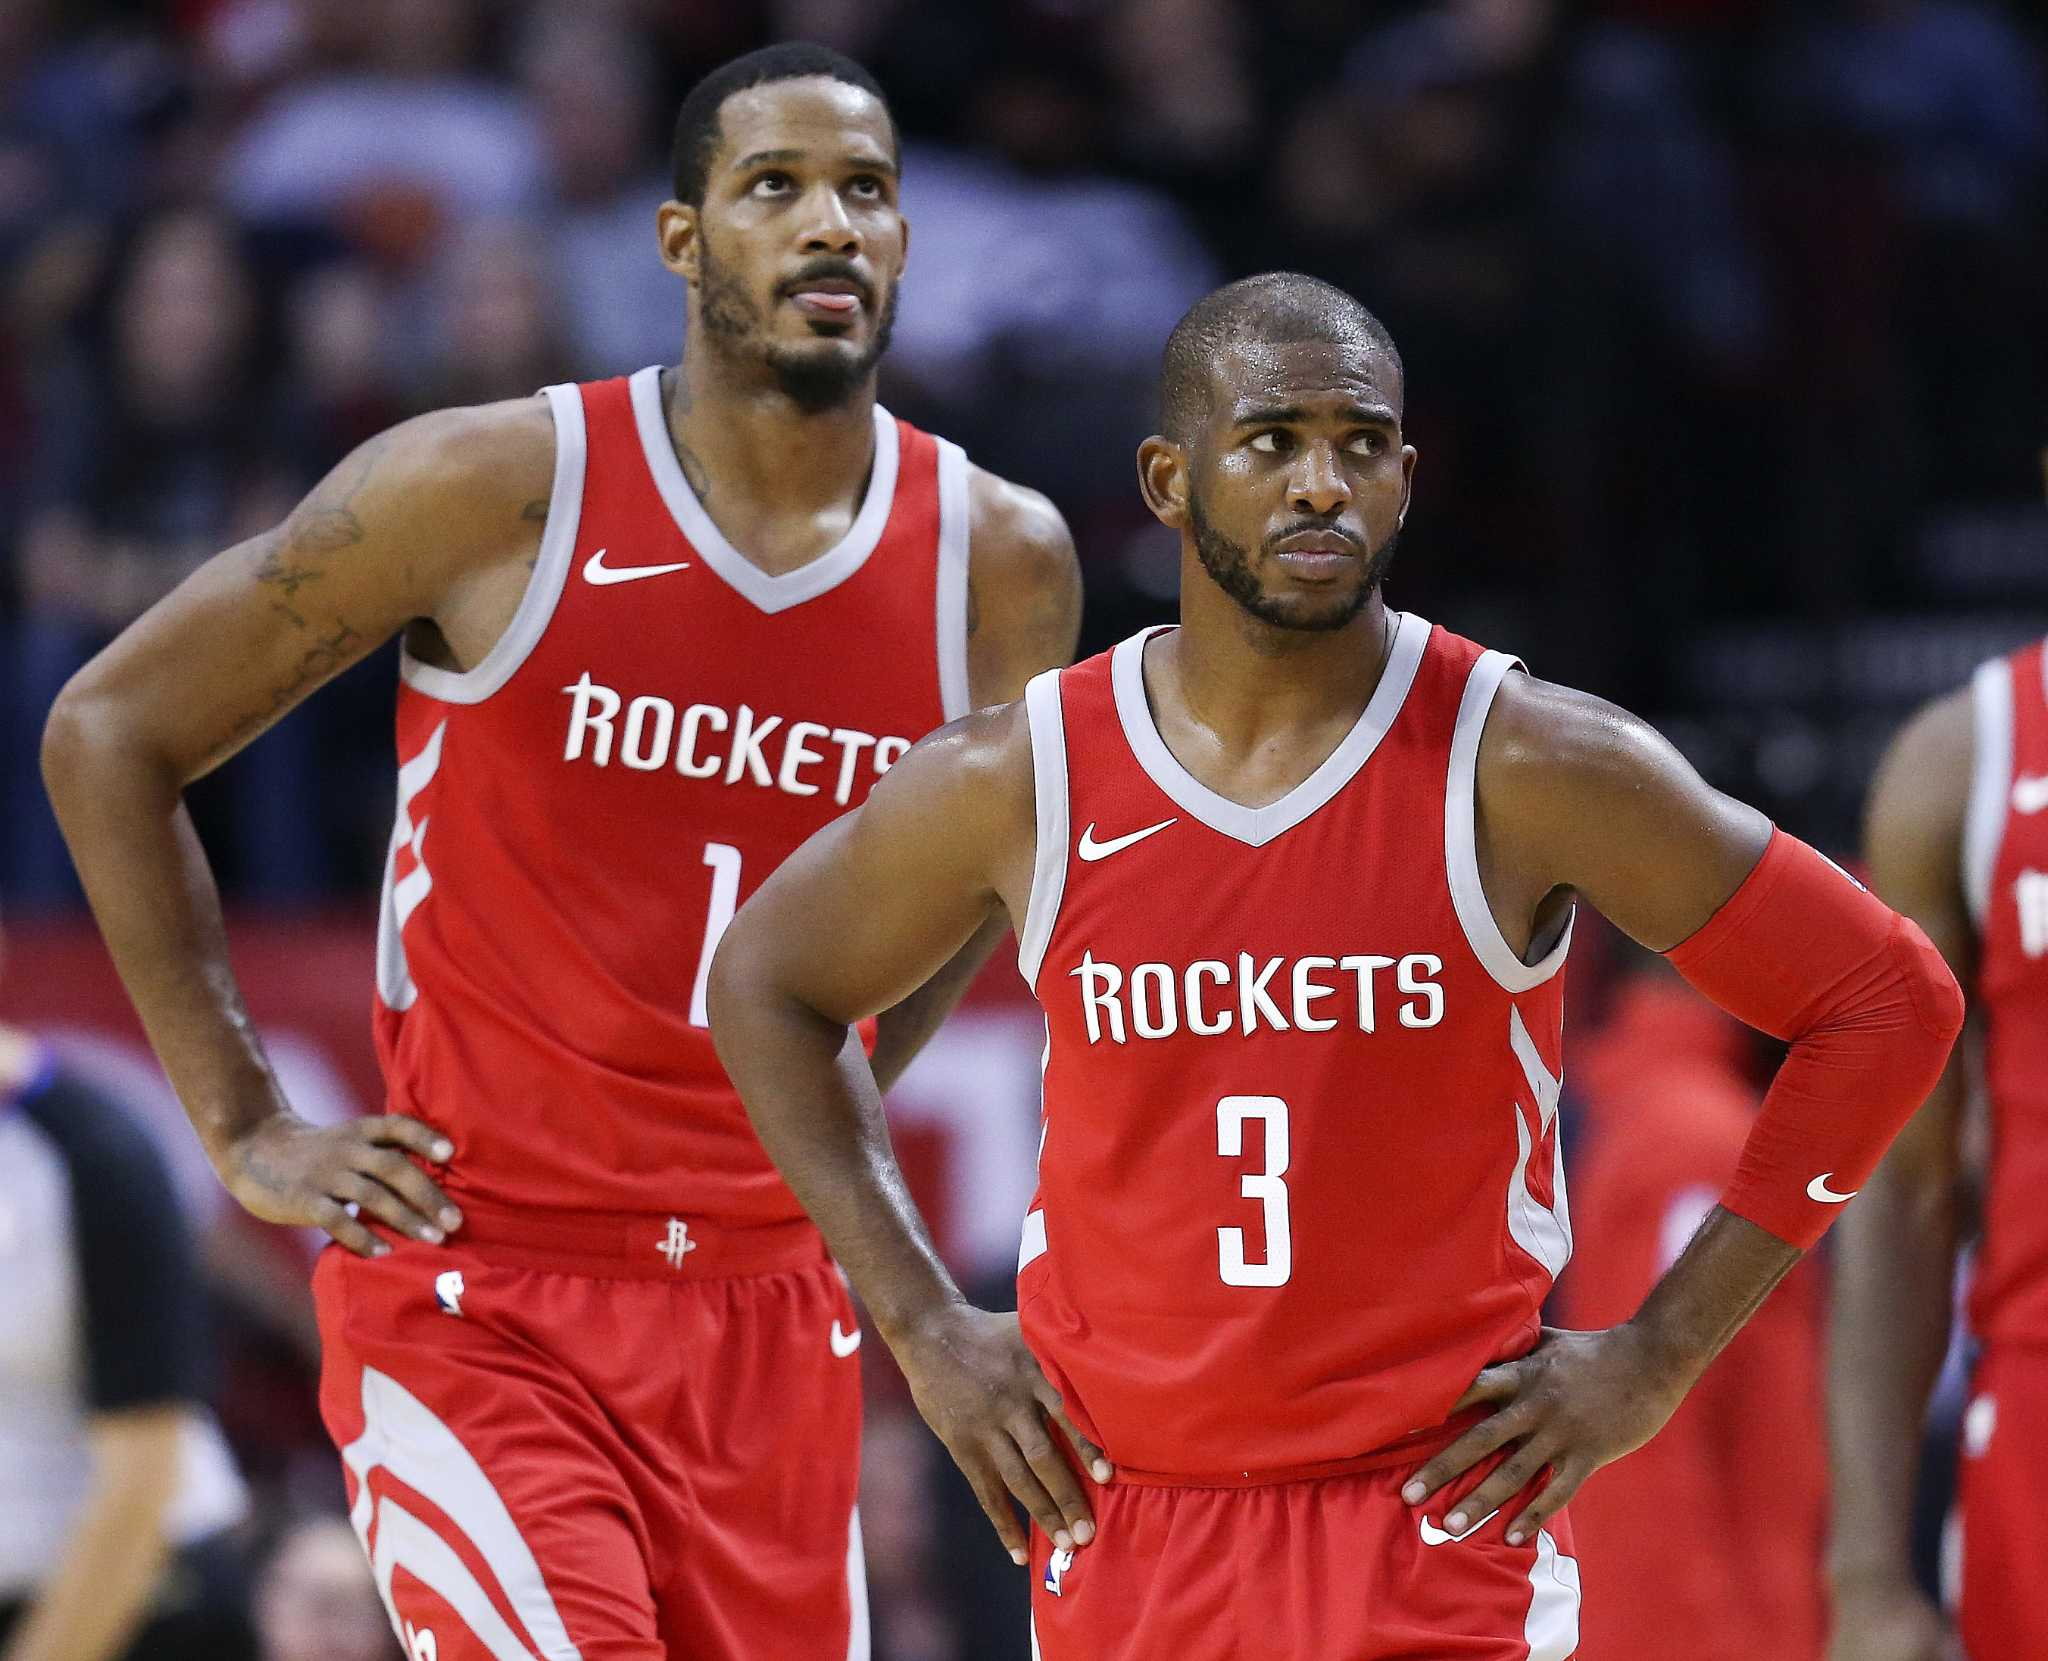 Rockets  Chris Paul has fond memories of 6 years with Clippers -  HoustonChronicle.com bc31cbcc6